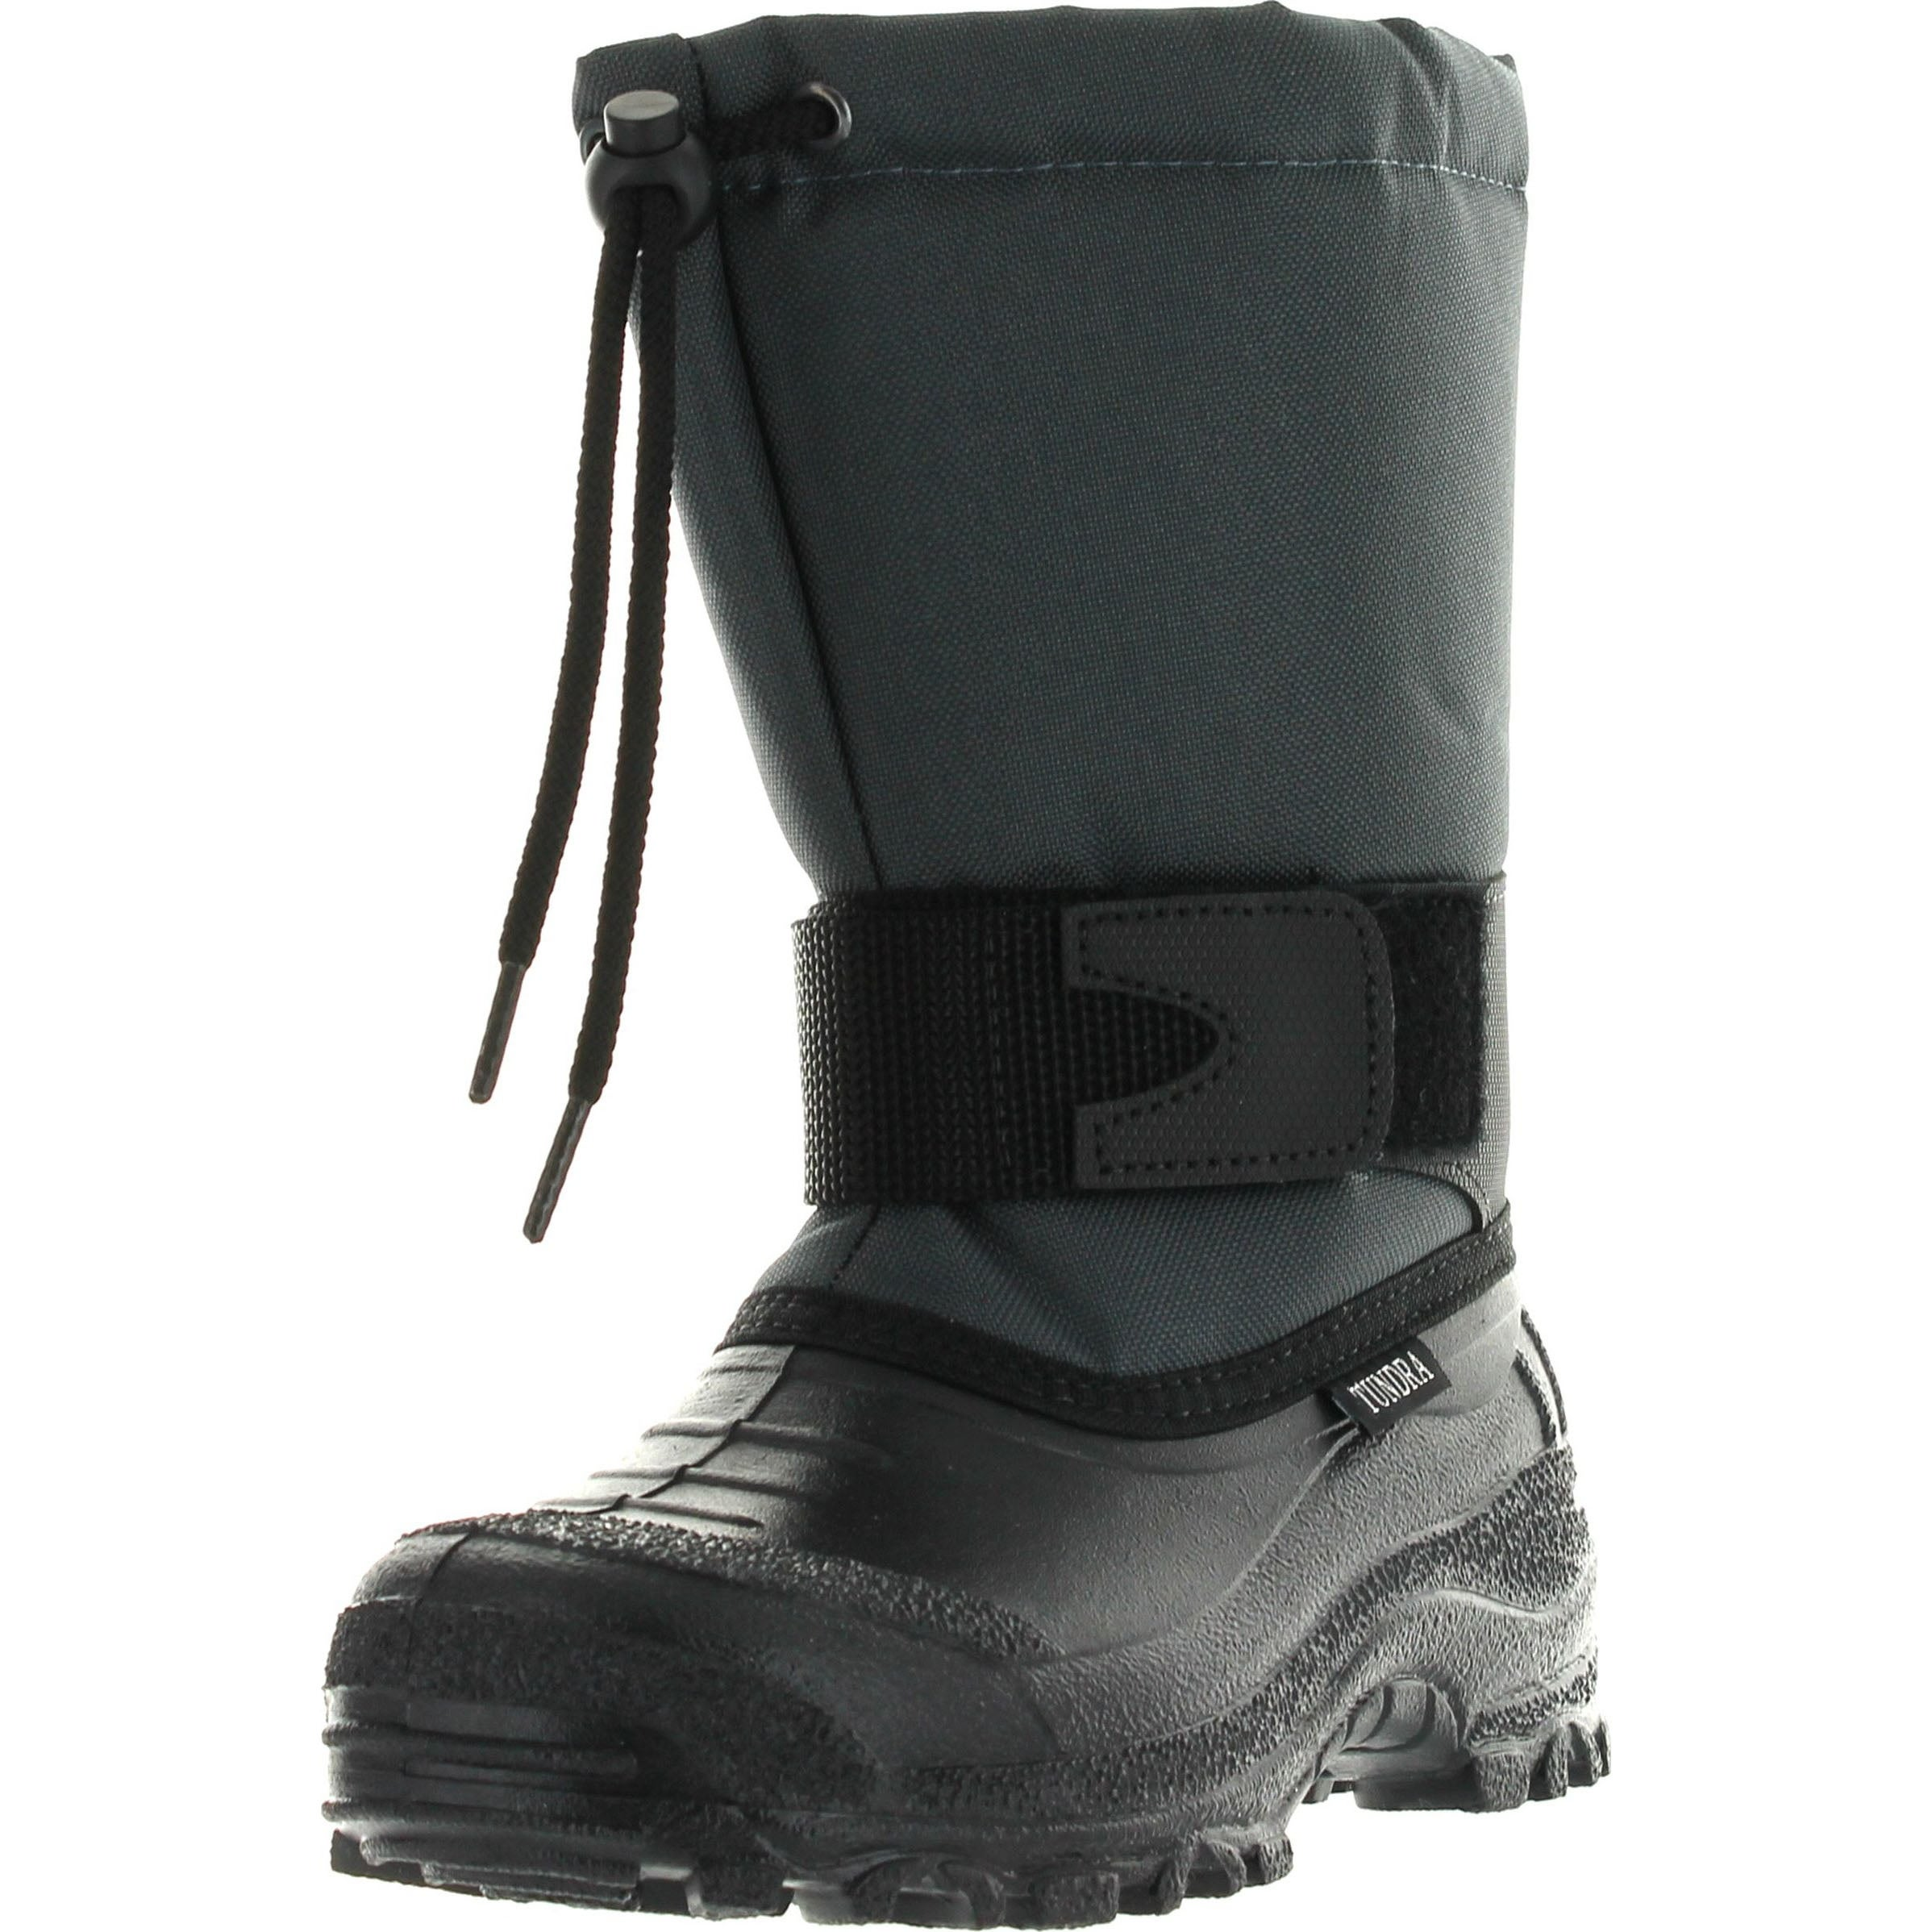 Tundra Boys Montana Waterproof All Weather Snow and Winter Boots Navy